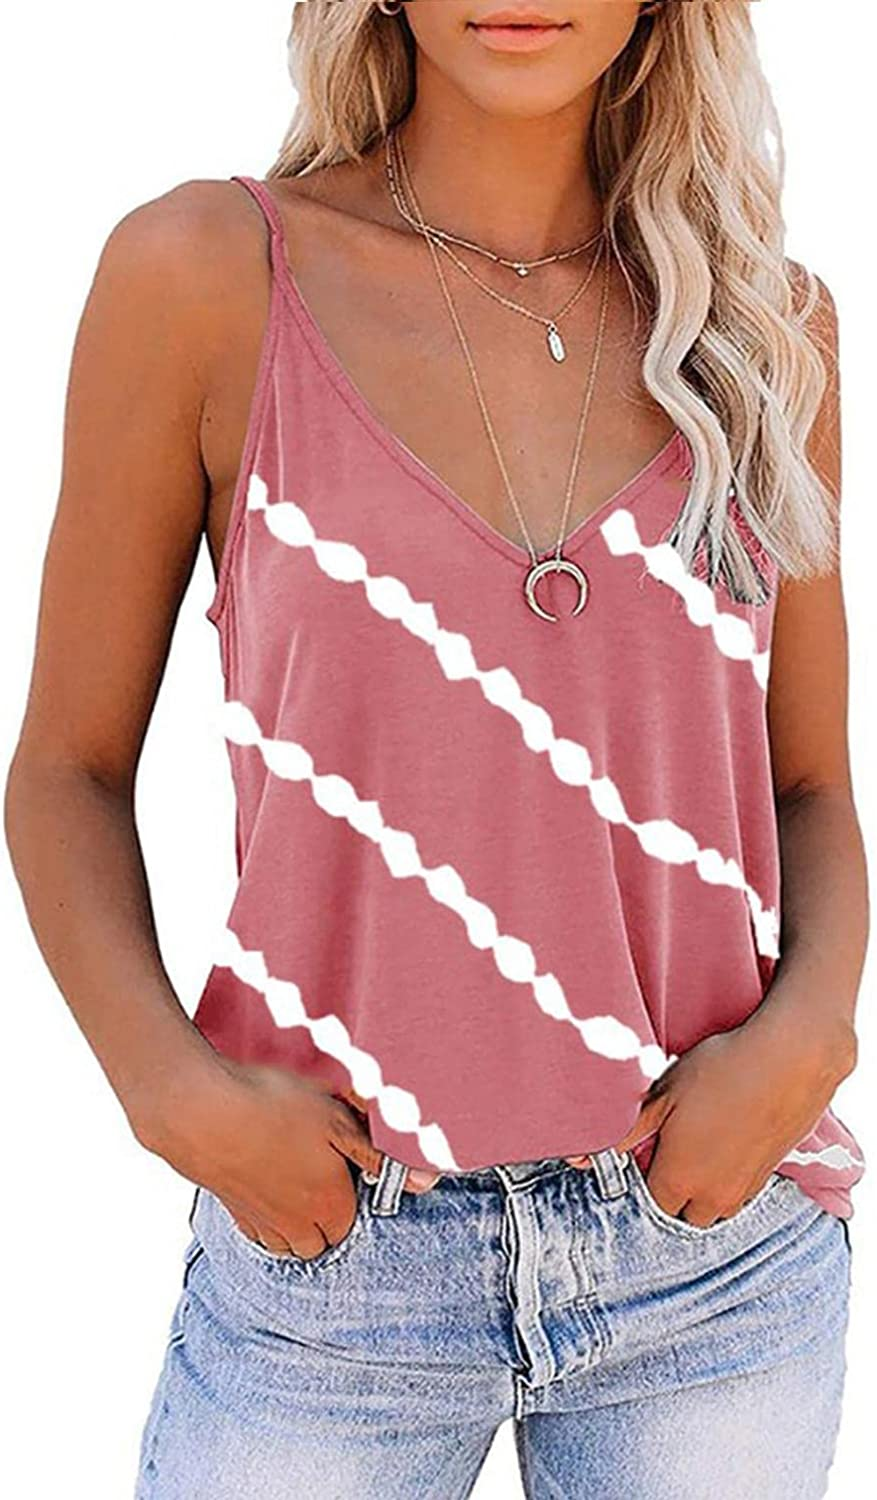 Womens Tops Tops for Women Casual Summer Cotton,Womens Tank Tops V Neck Sleeveless Summer Shirts Loose Casual Tops